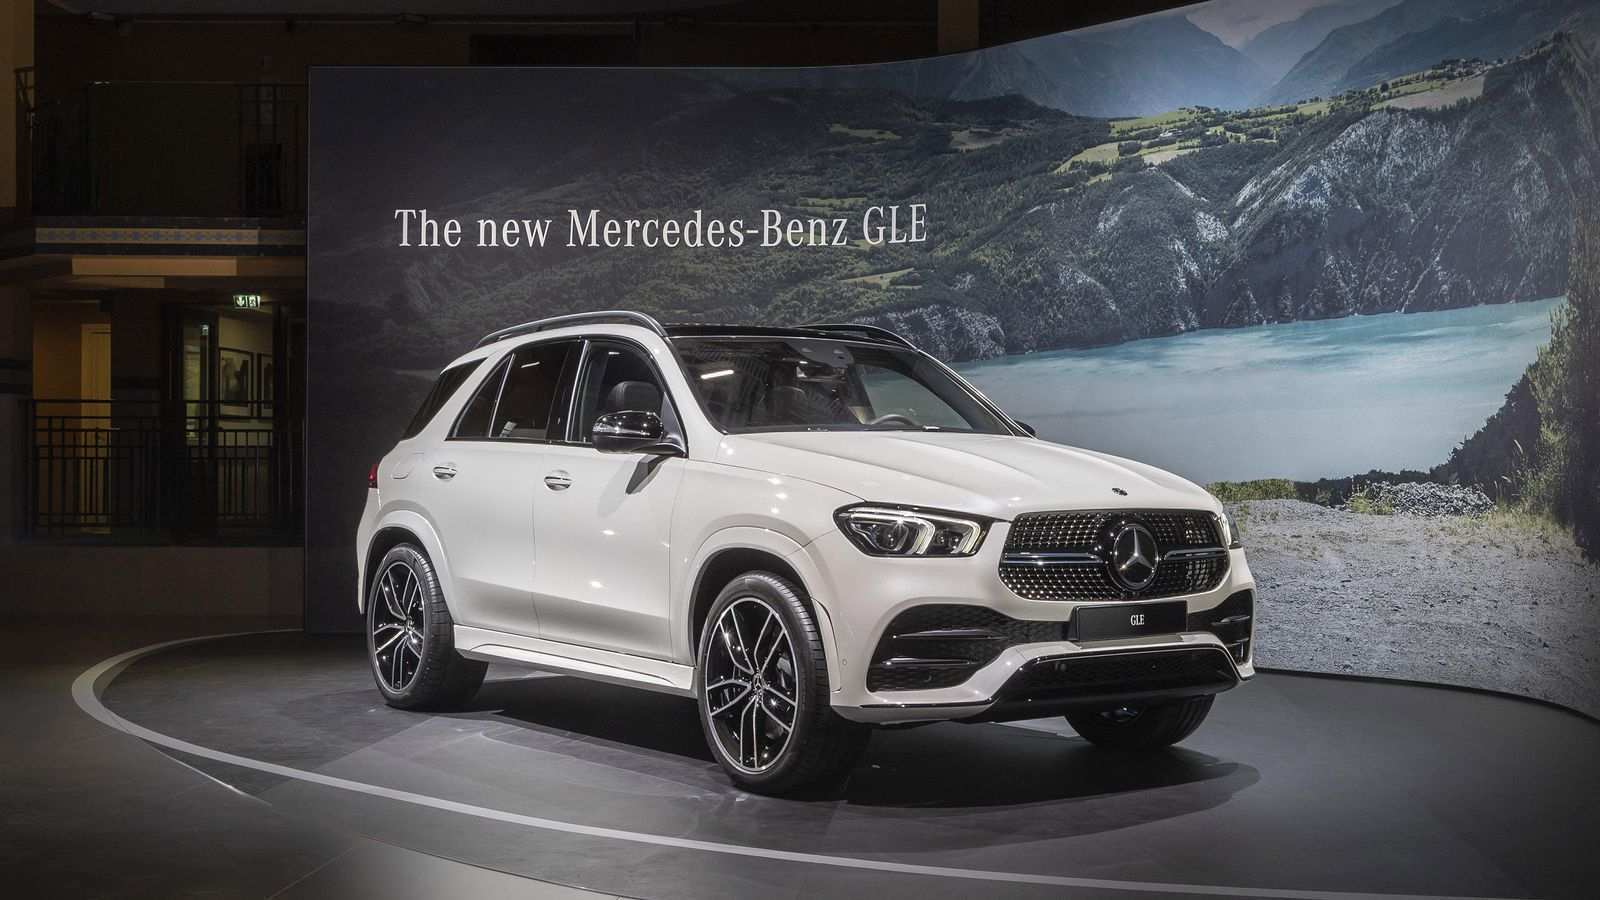 82 Gallery of 2020 Mercedes ML Class 400 Images for 2020 Mercedes ML Class 400